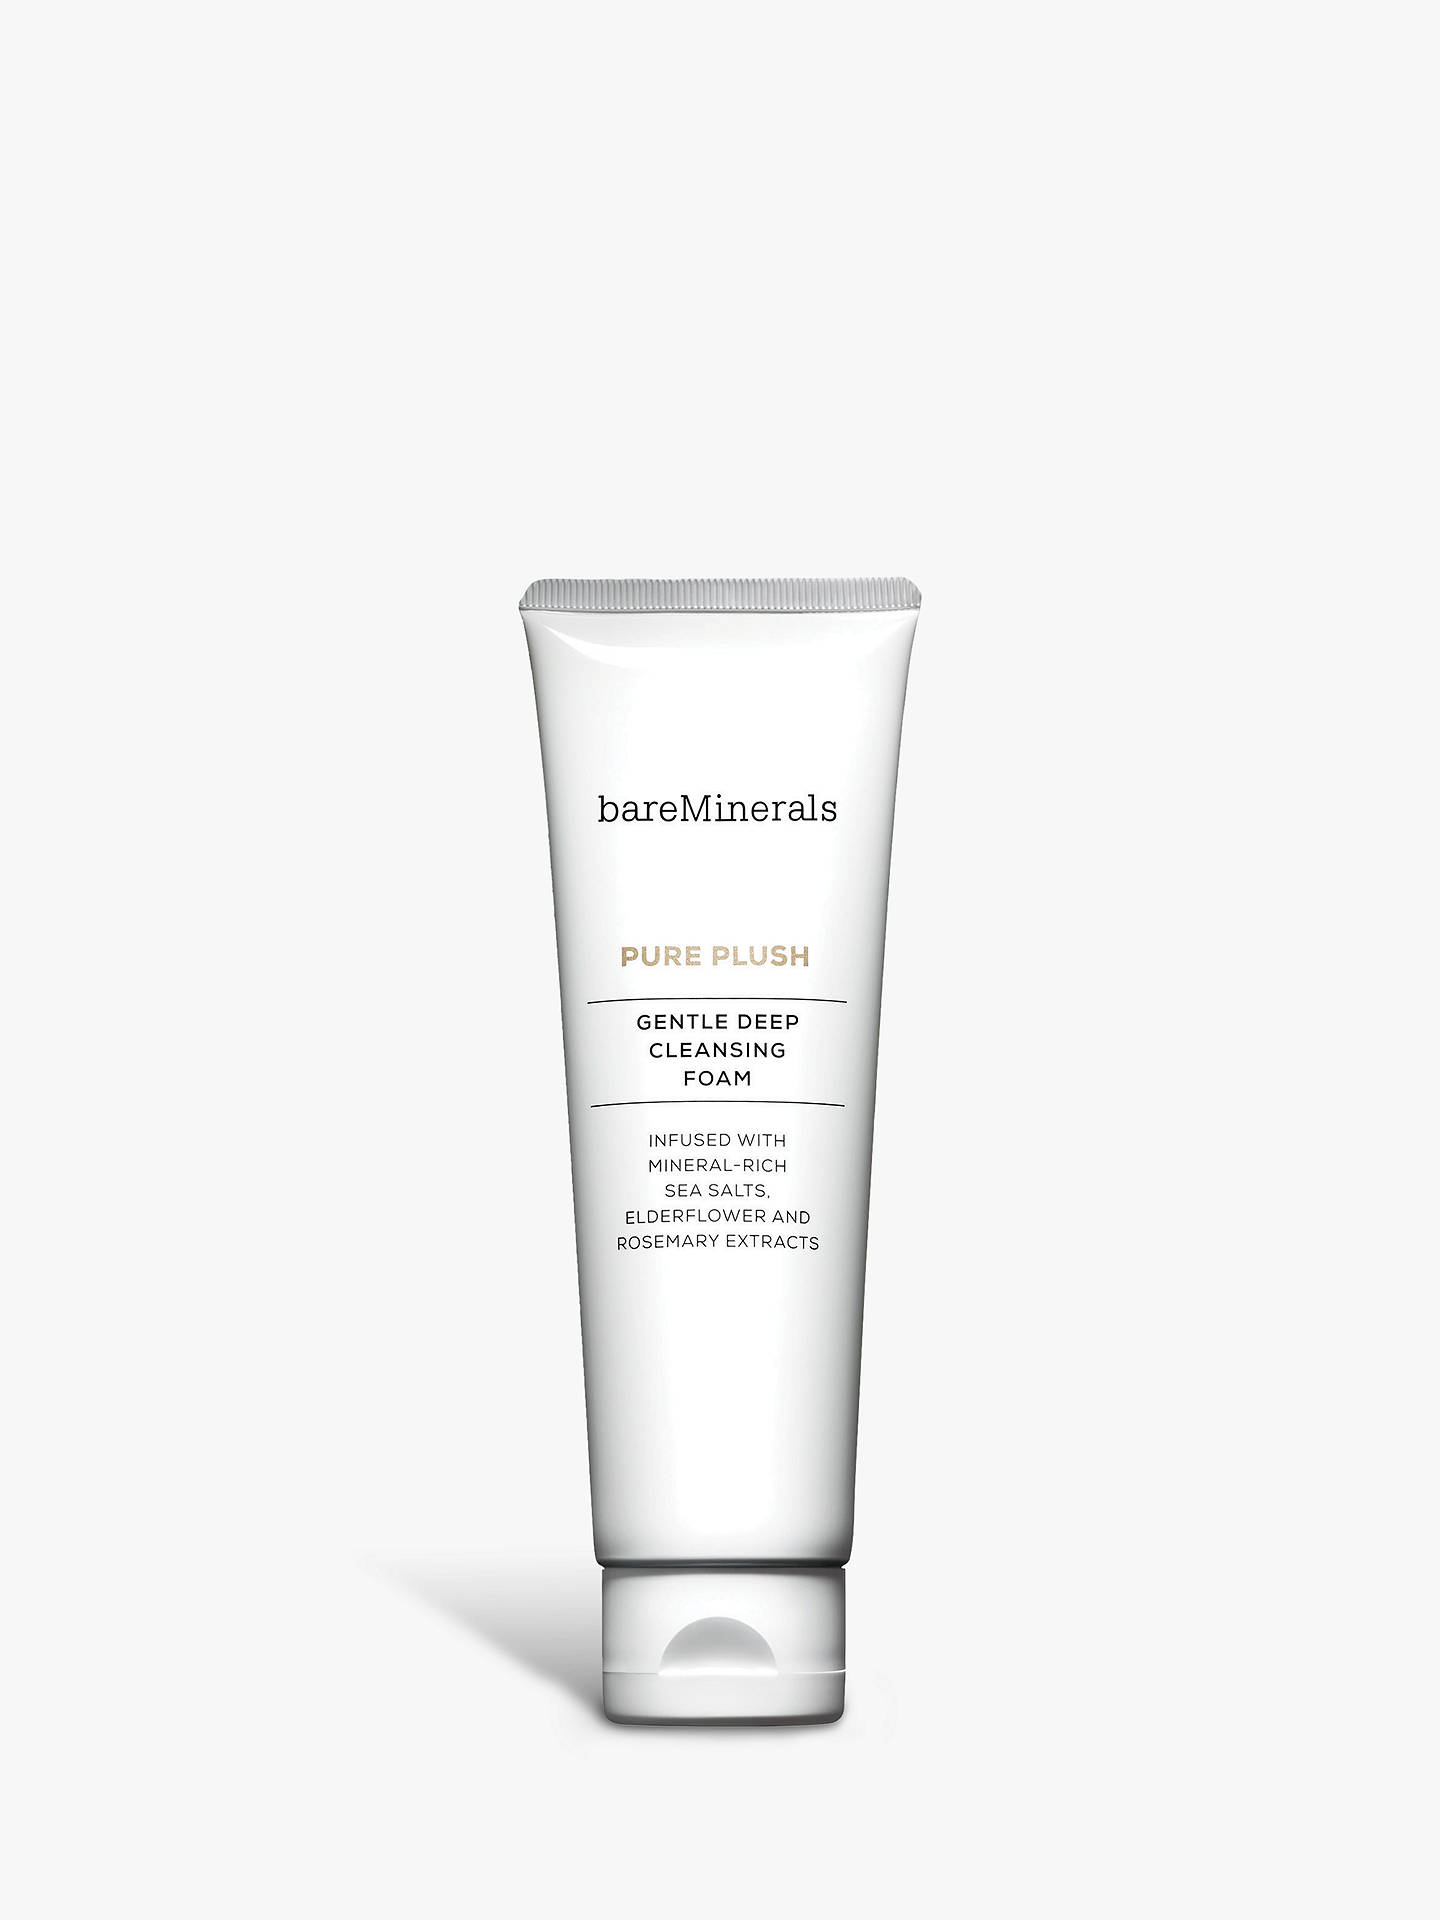 BuybareMinerals Pure Plush Gentle Deep Cleansing Foam, 125ml Online at johnlewis.com